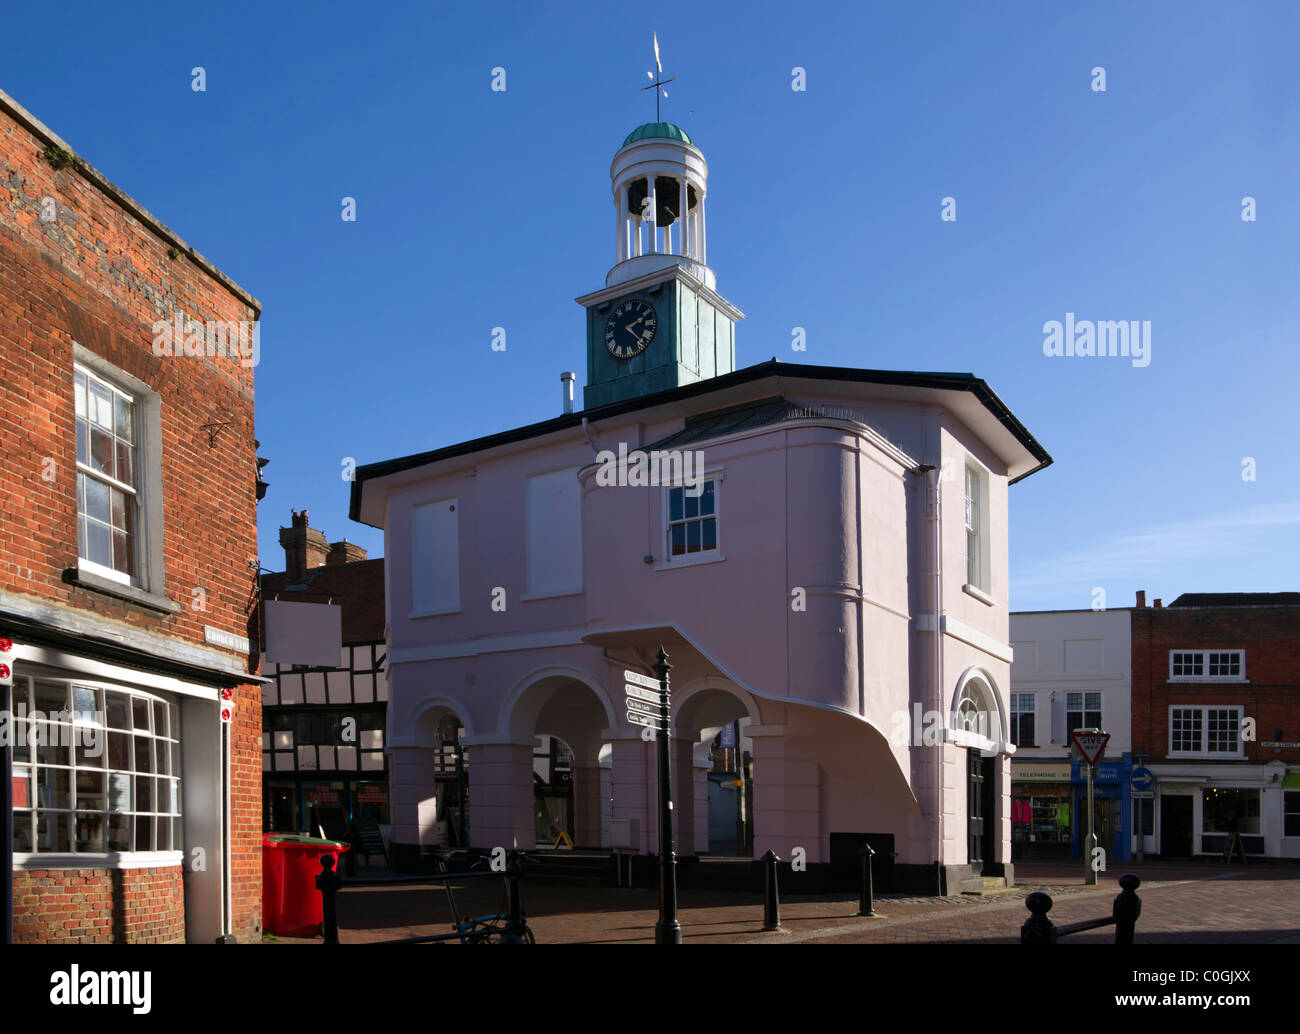 Pepperpot, old town hall, Godalming - Stock Image